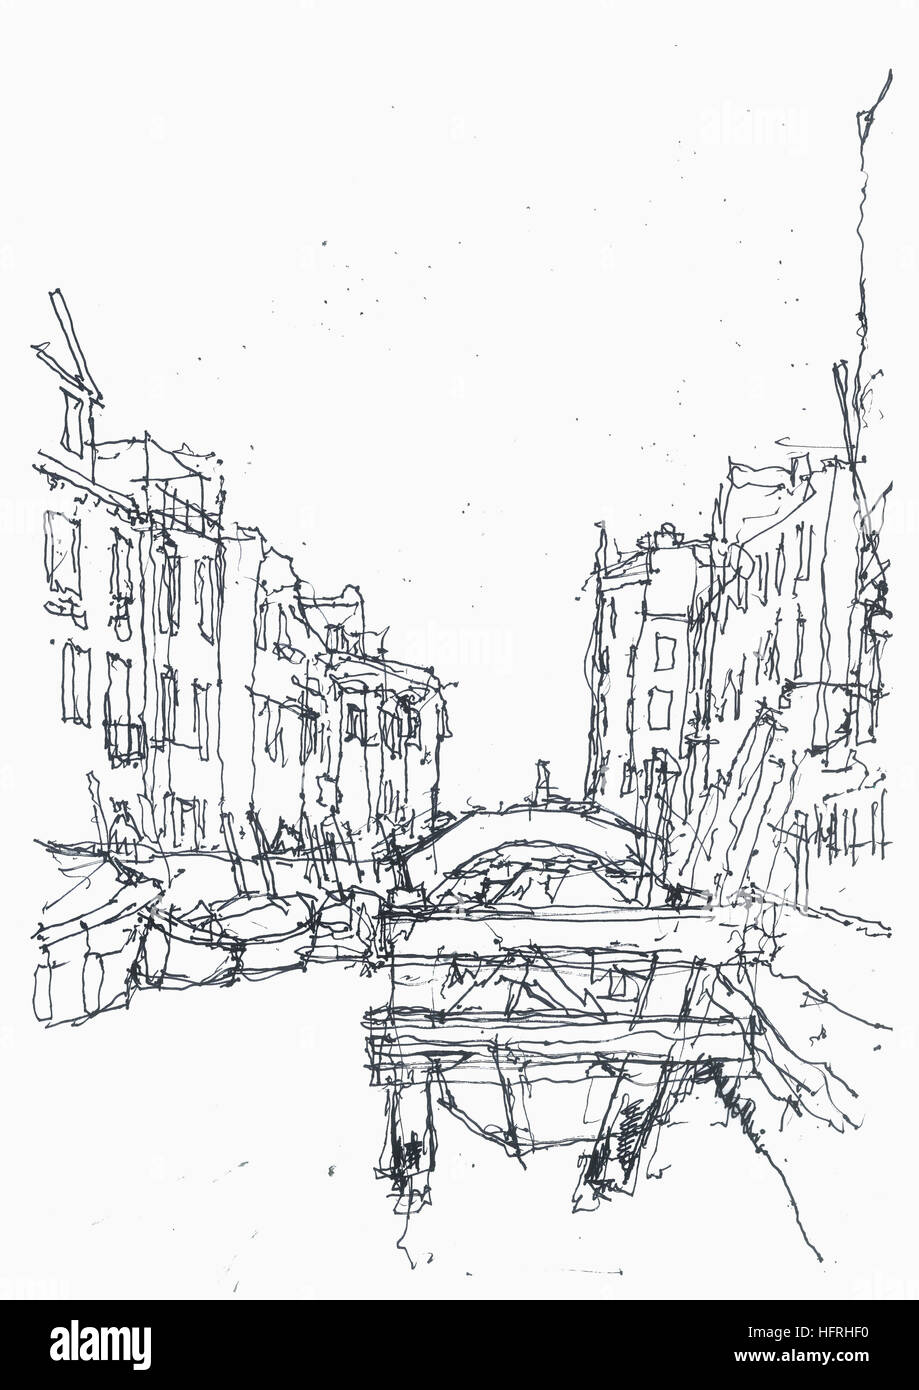 Canal street in Venice sketched from the path. - Stock Image